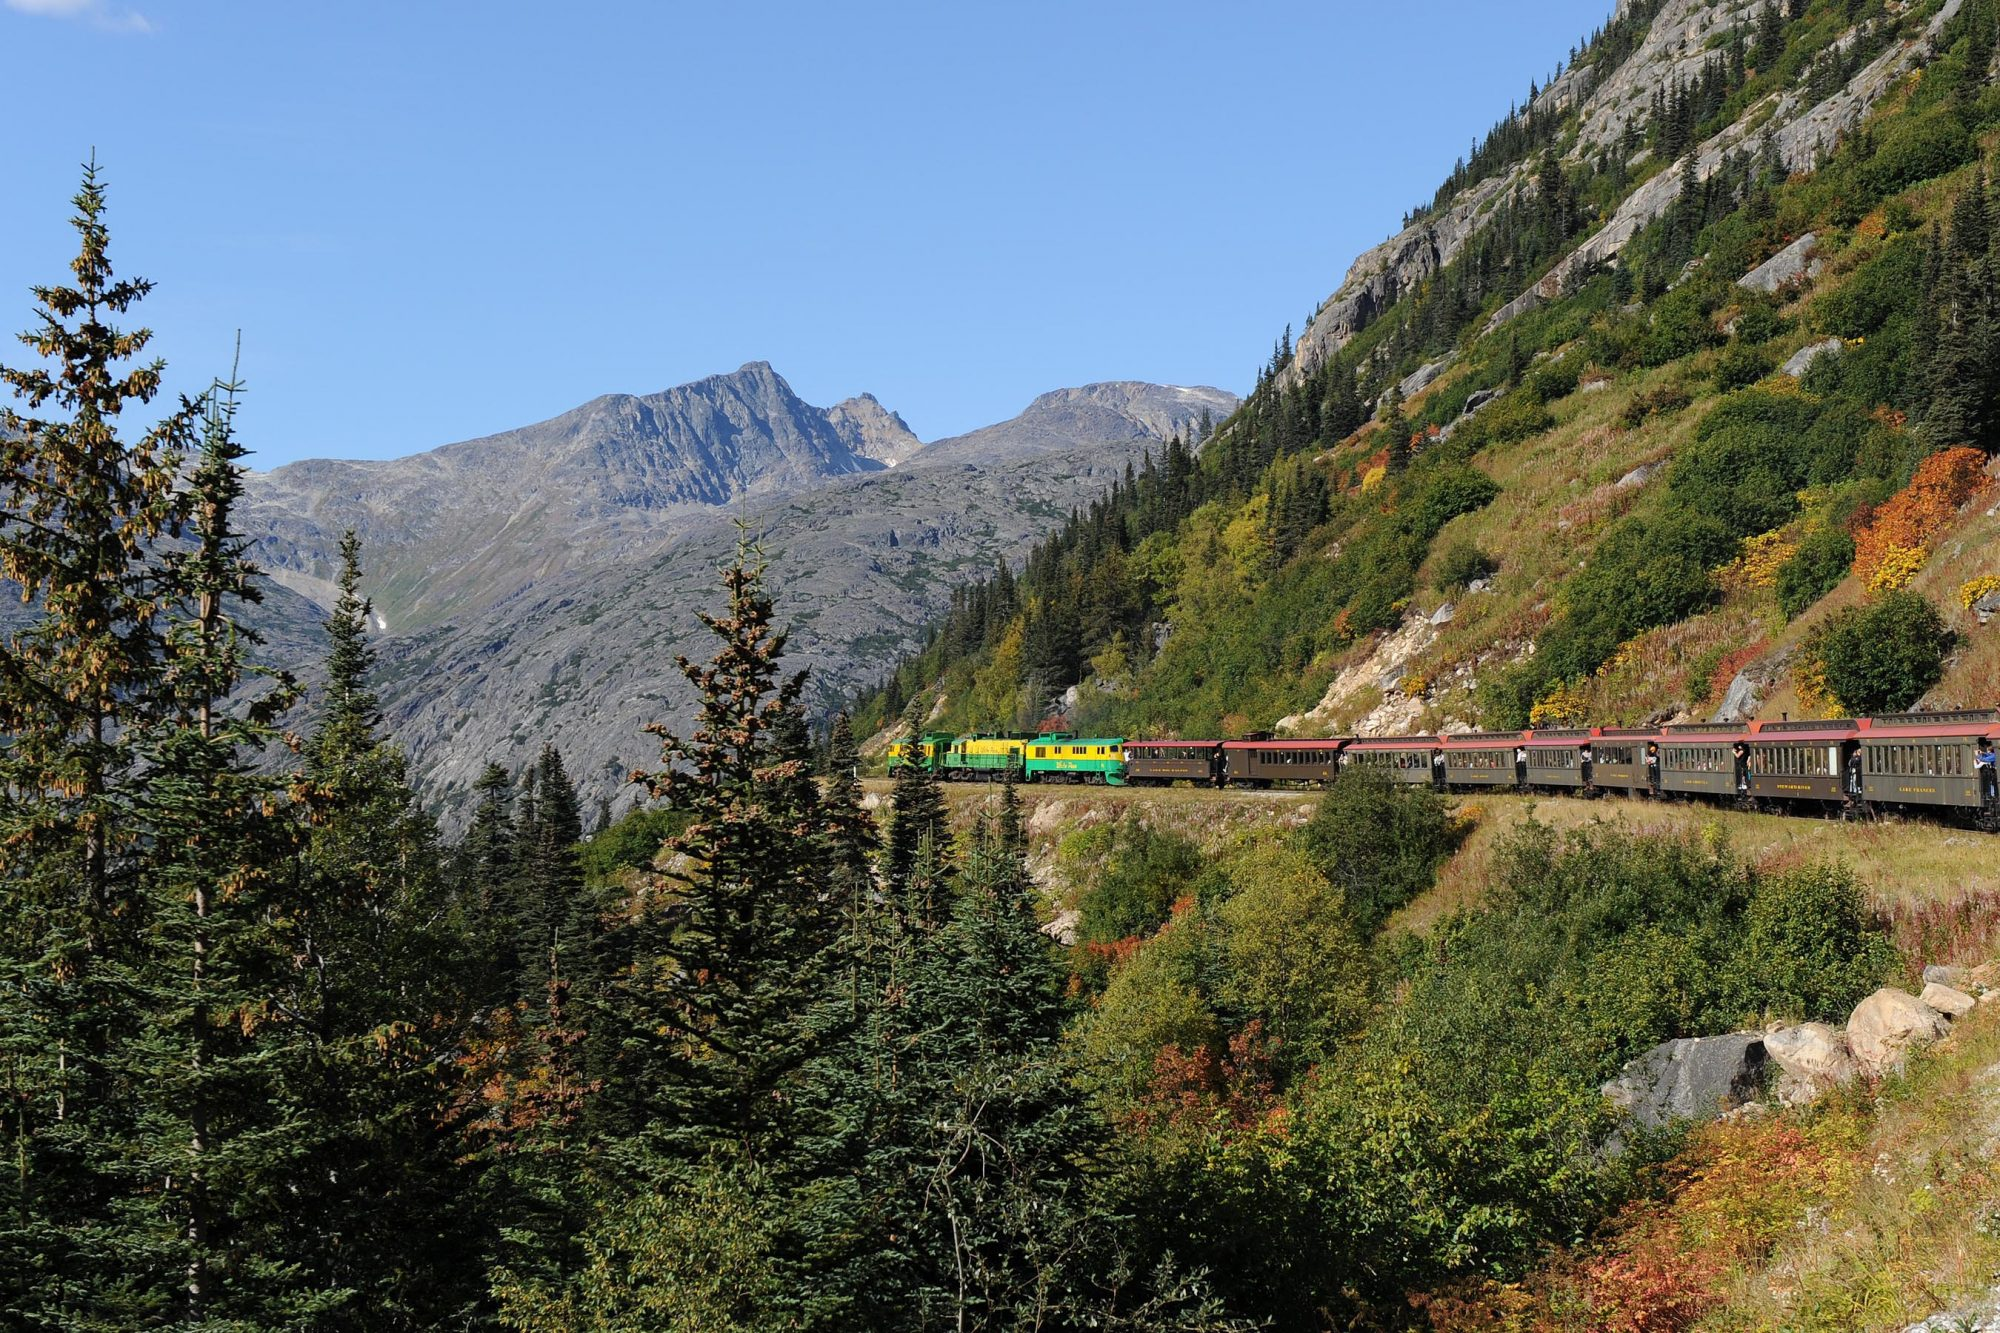 The Railroad Ride to White Pass Summit